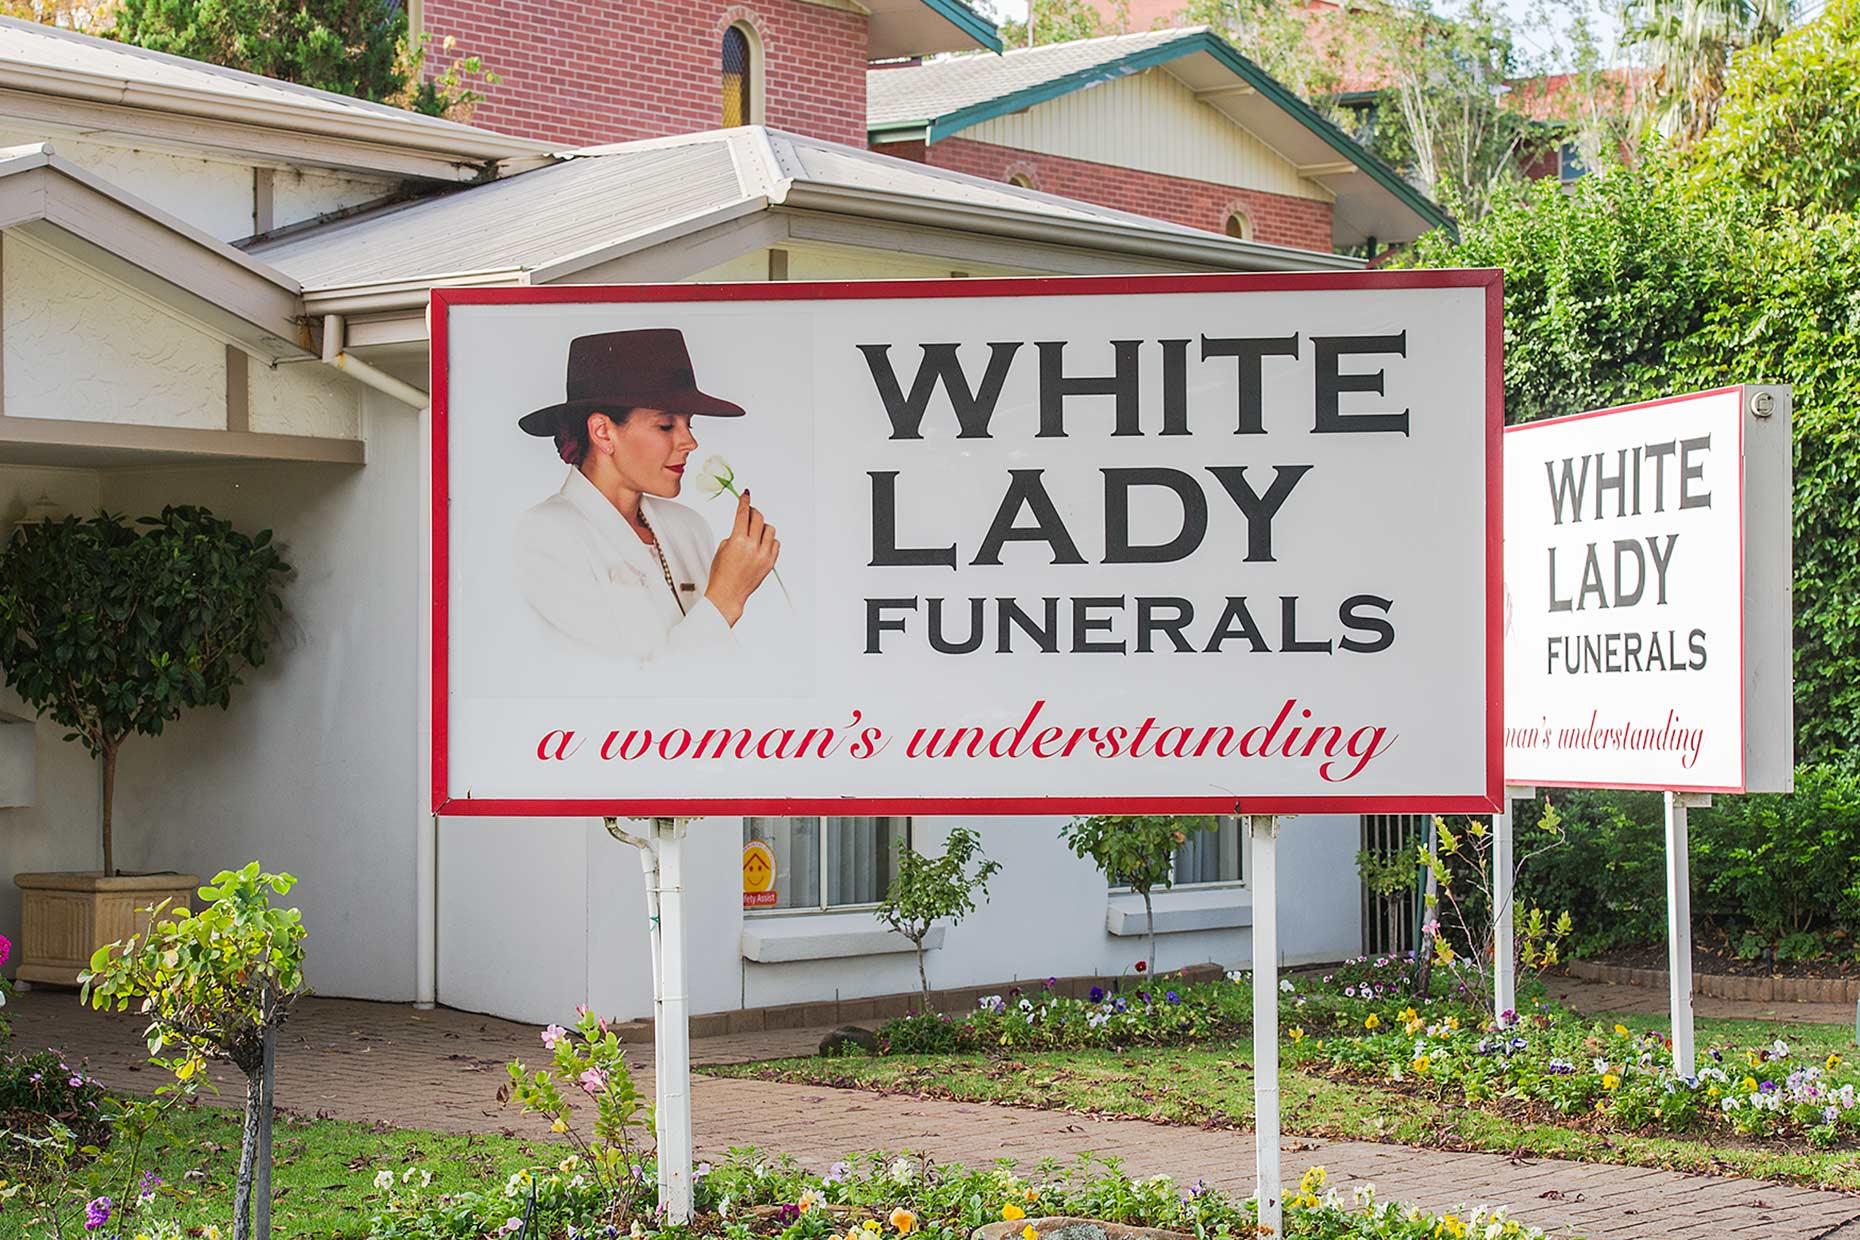 LAT_PhotoReporters_white-lady-funerals-adelaide